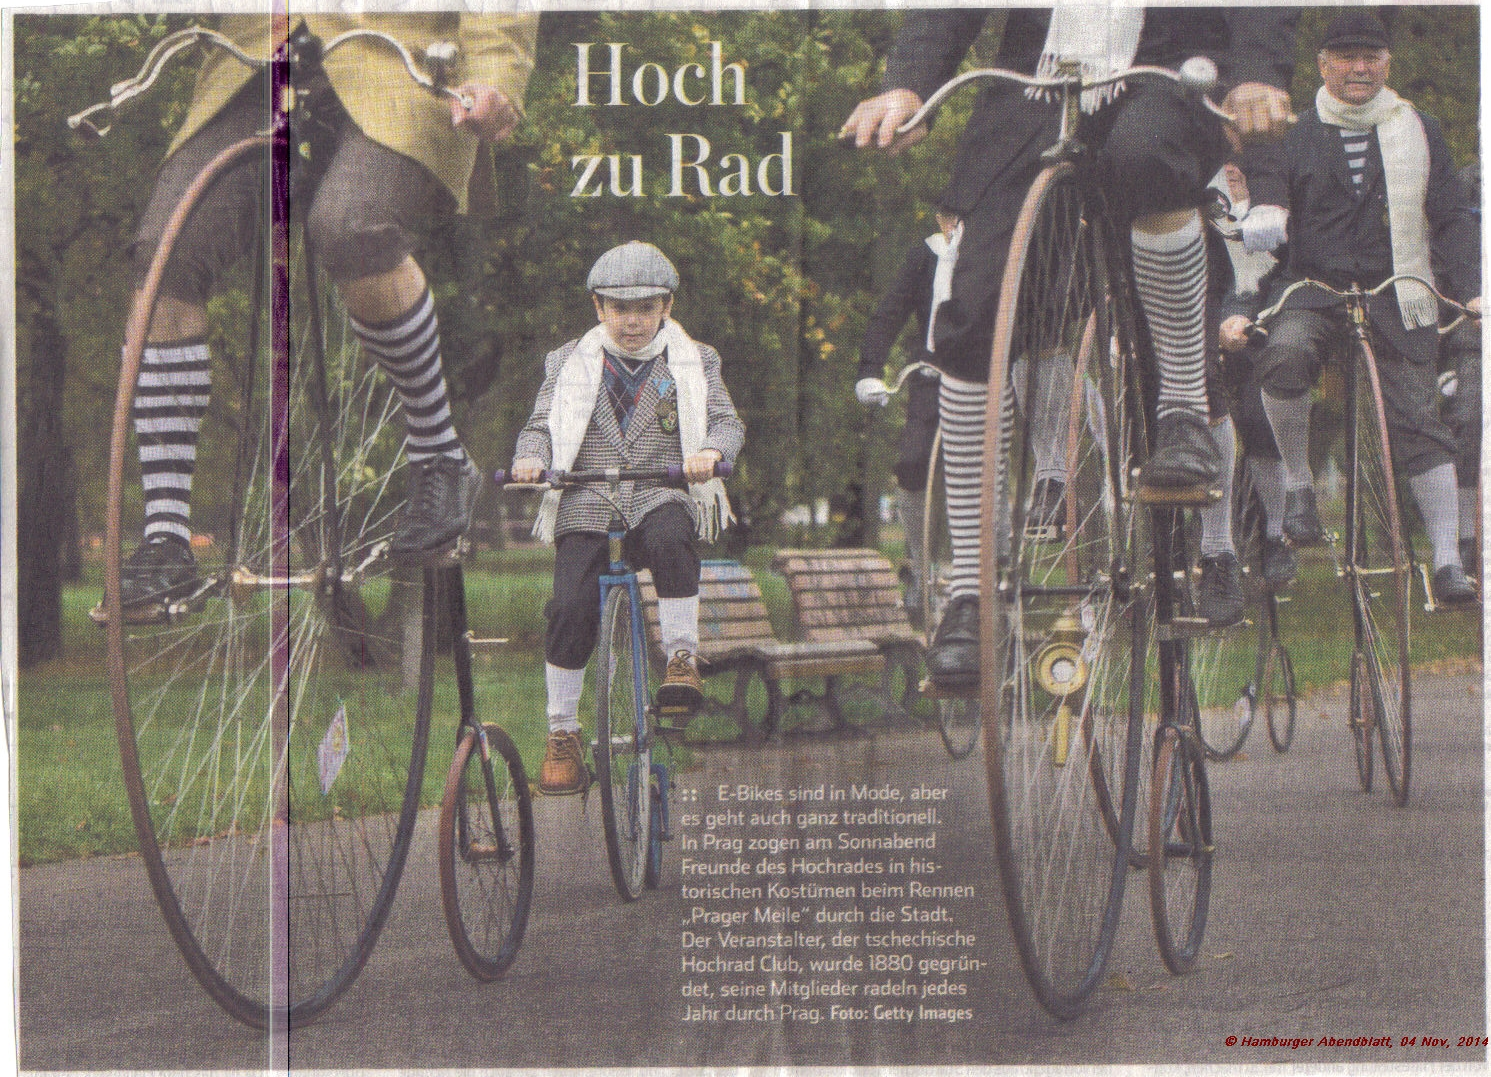 Mile of Prage ride 2014 (picture courtesy of Hamburger Abendblatt)